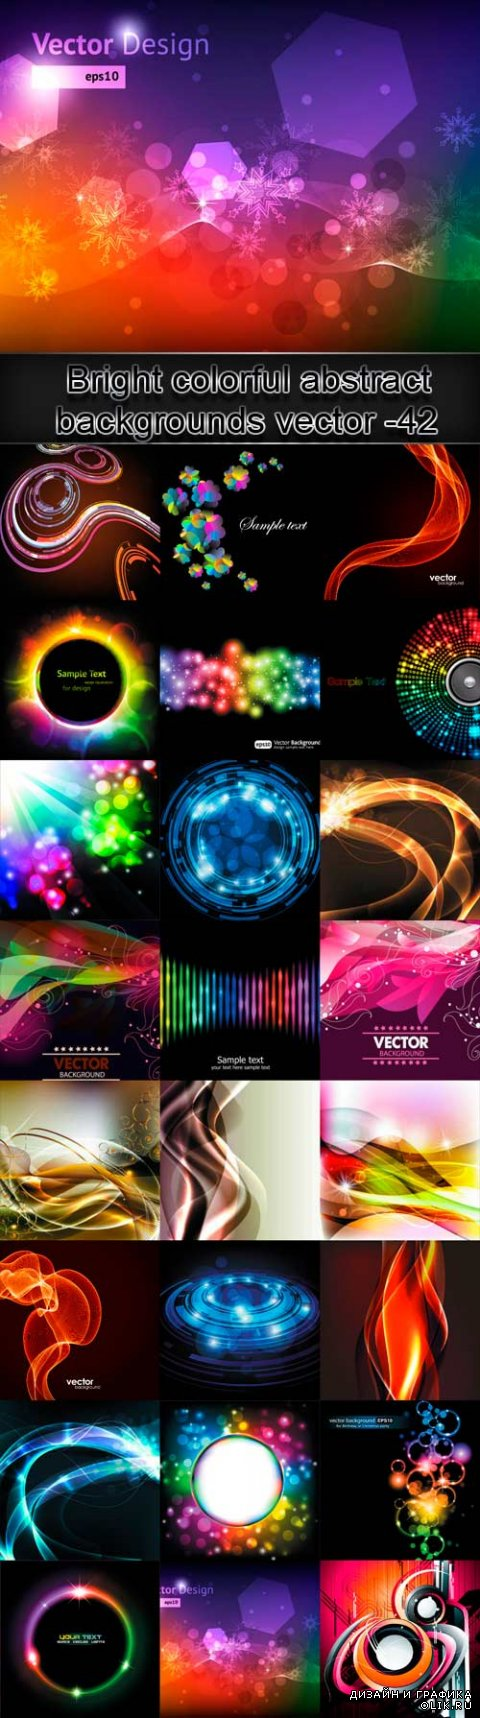 Bright colorful abstract backgrounds vector -42